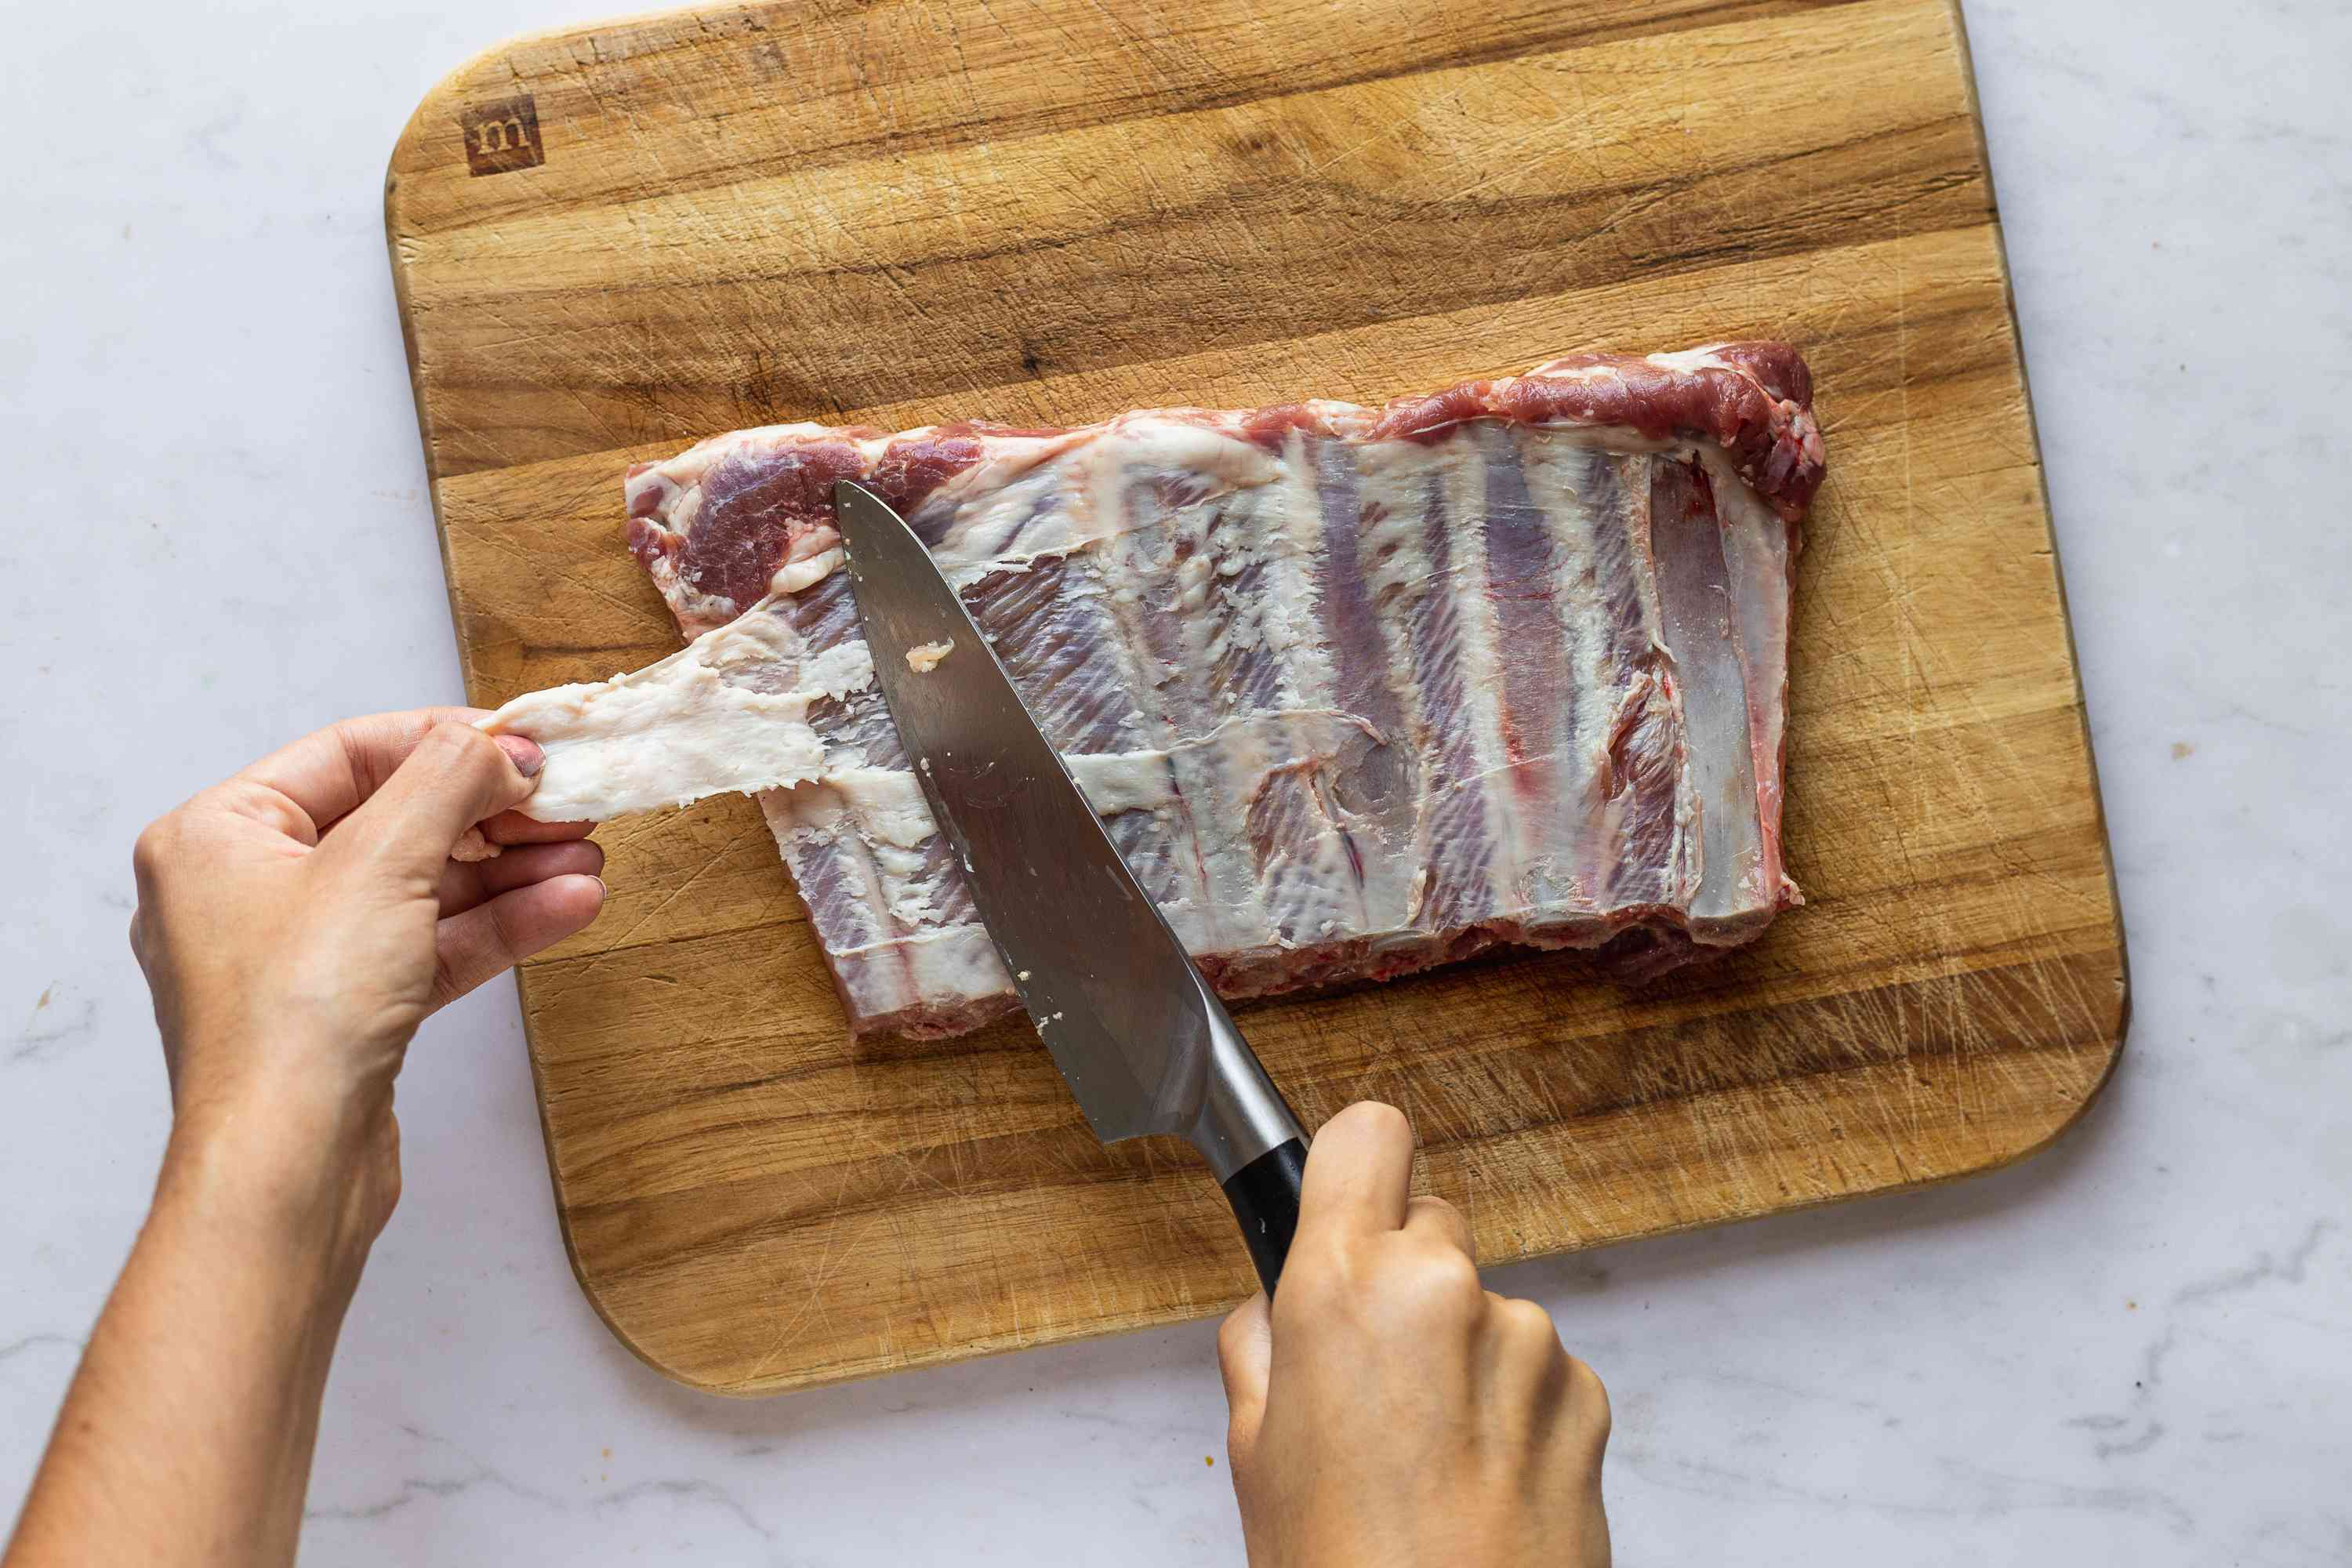 Silverskin from pork ribs being removed on a cutting board